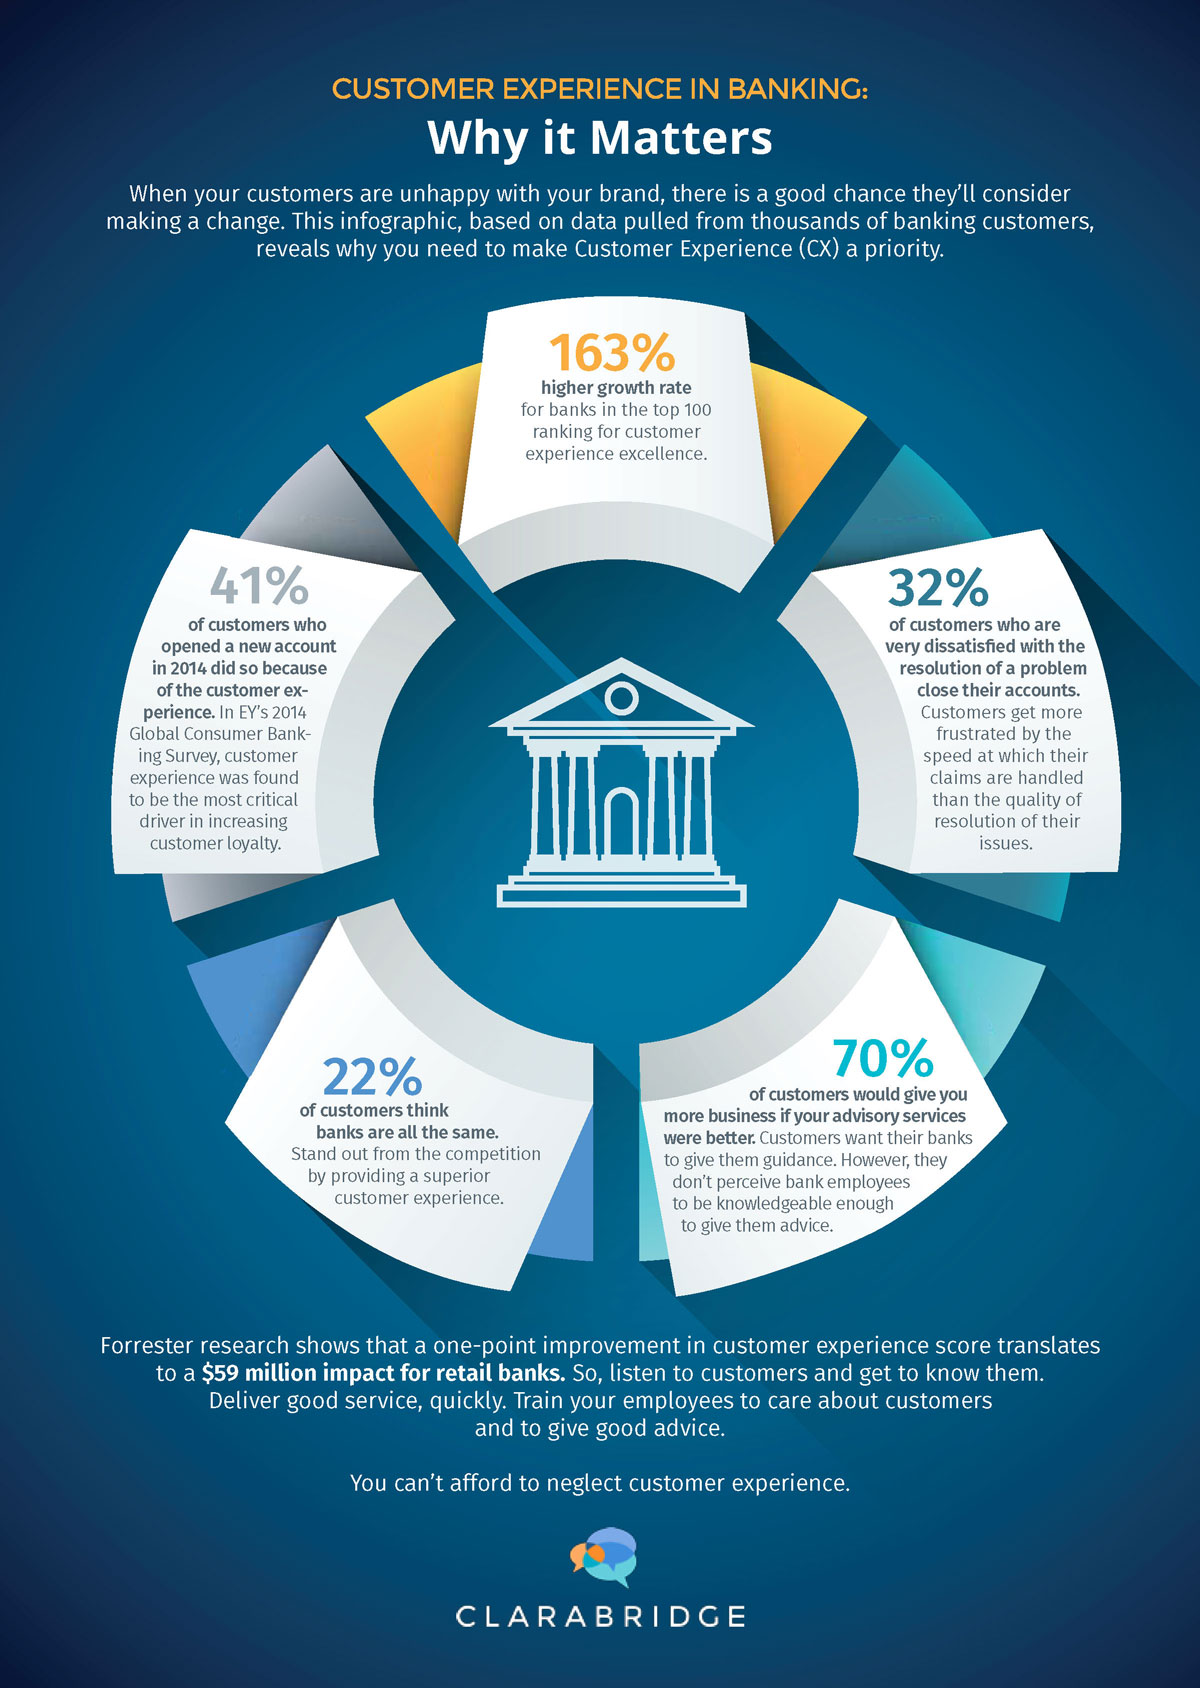 Customer Experience Matters In Banking